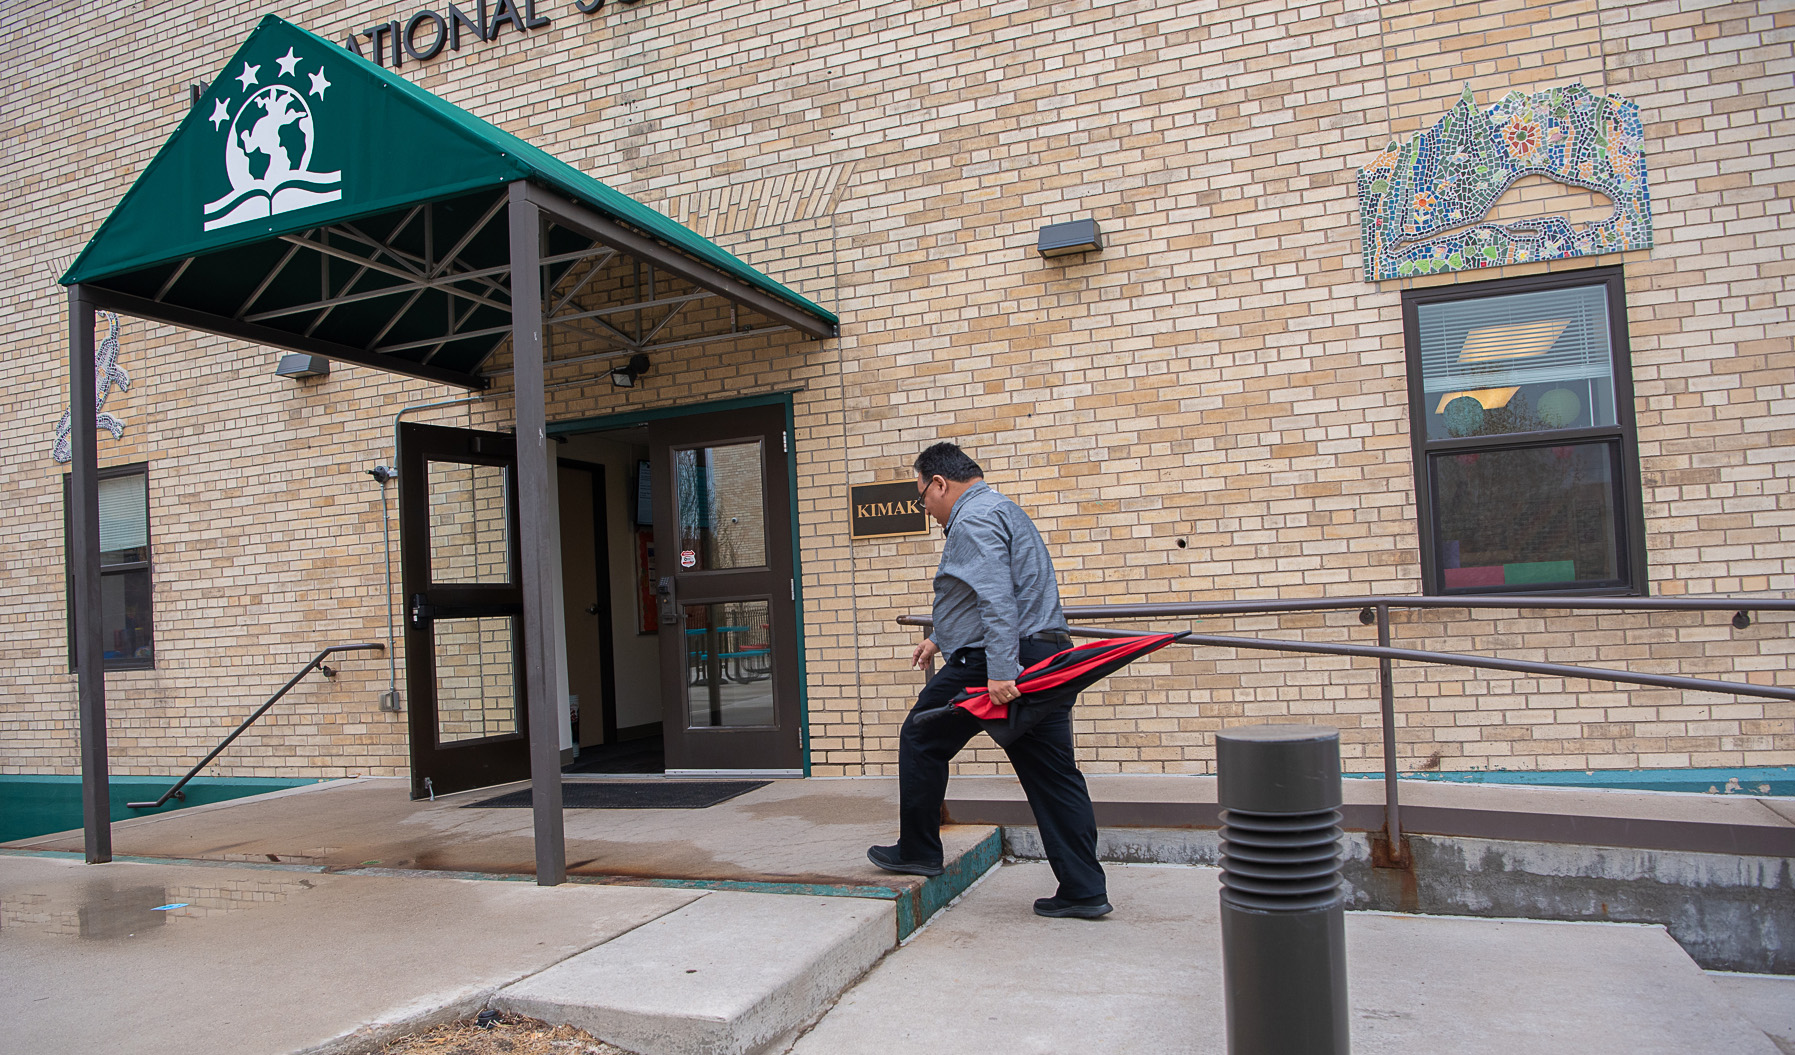 Nuñez walking into work at the Haselden Construction headquarters in Centennial, near Denver